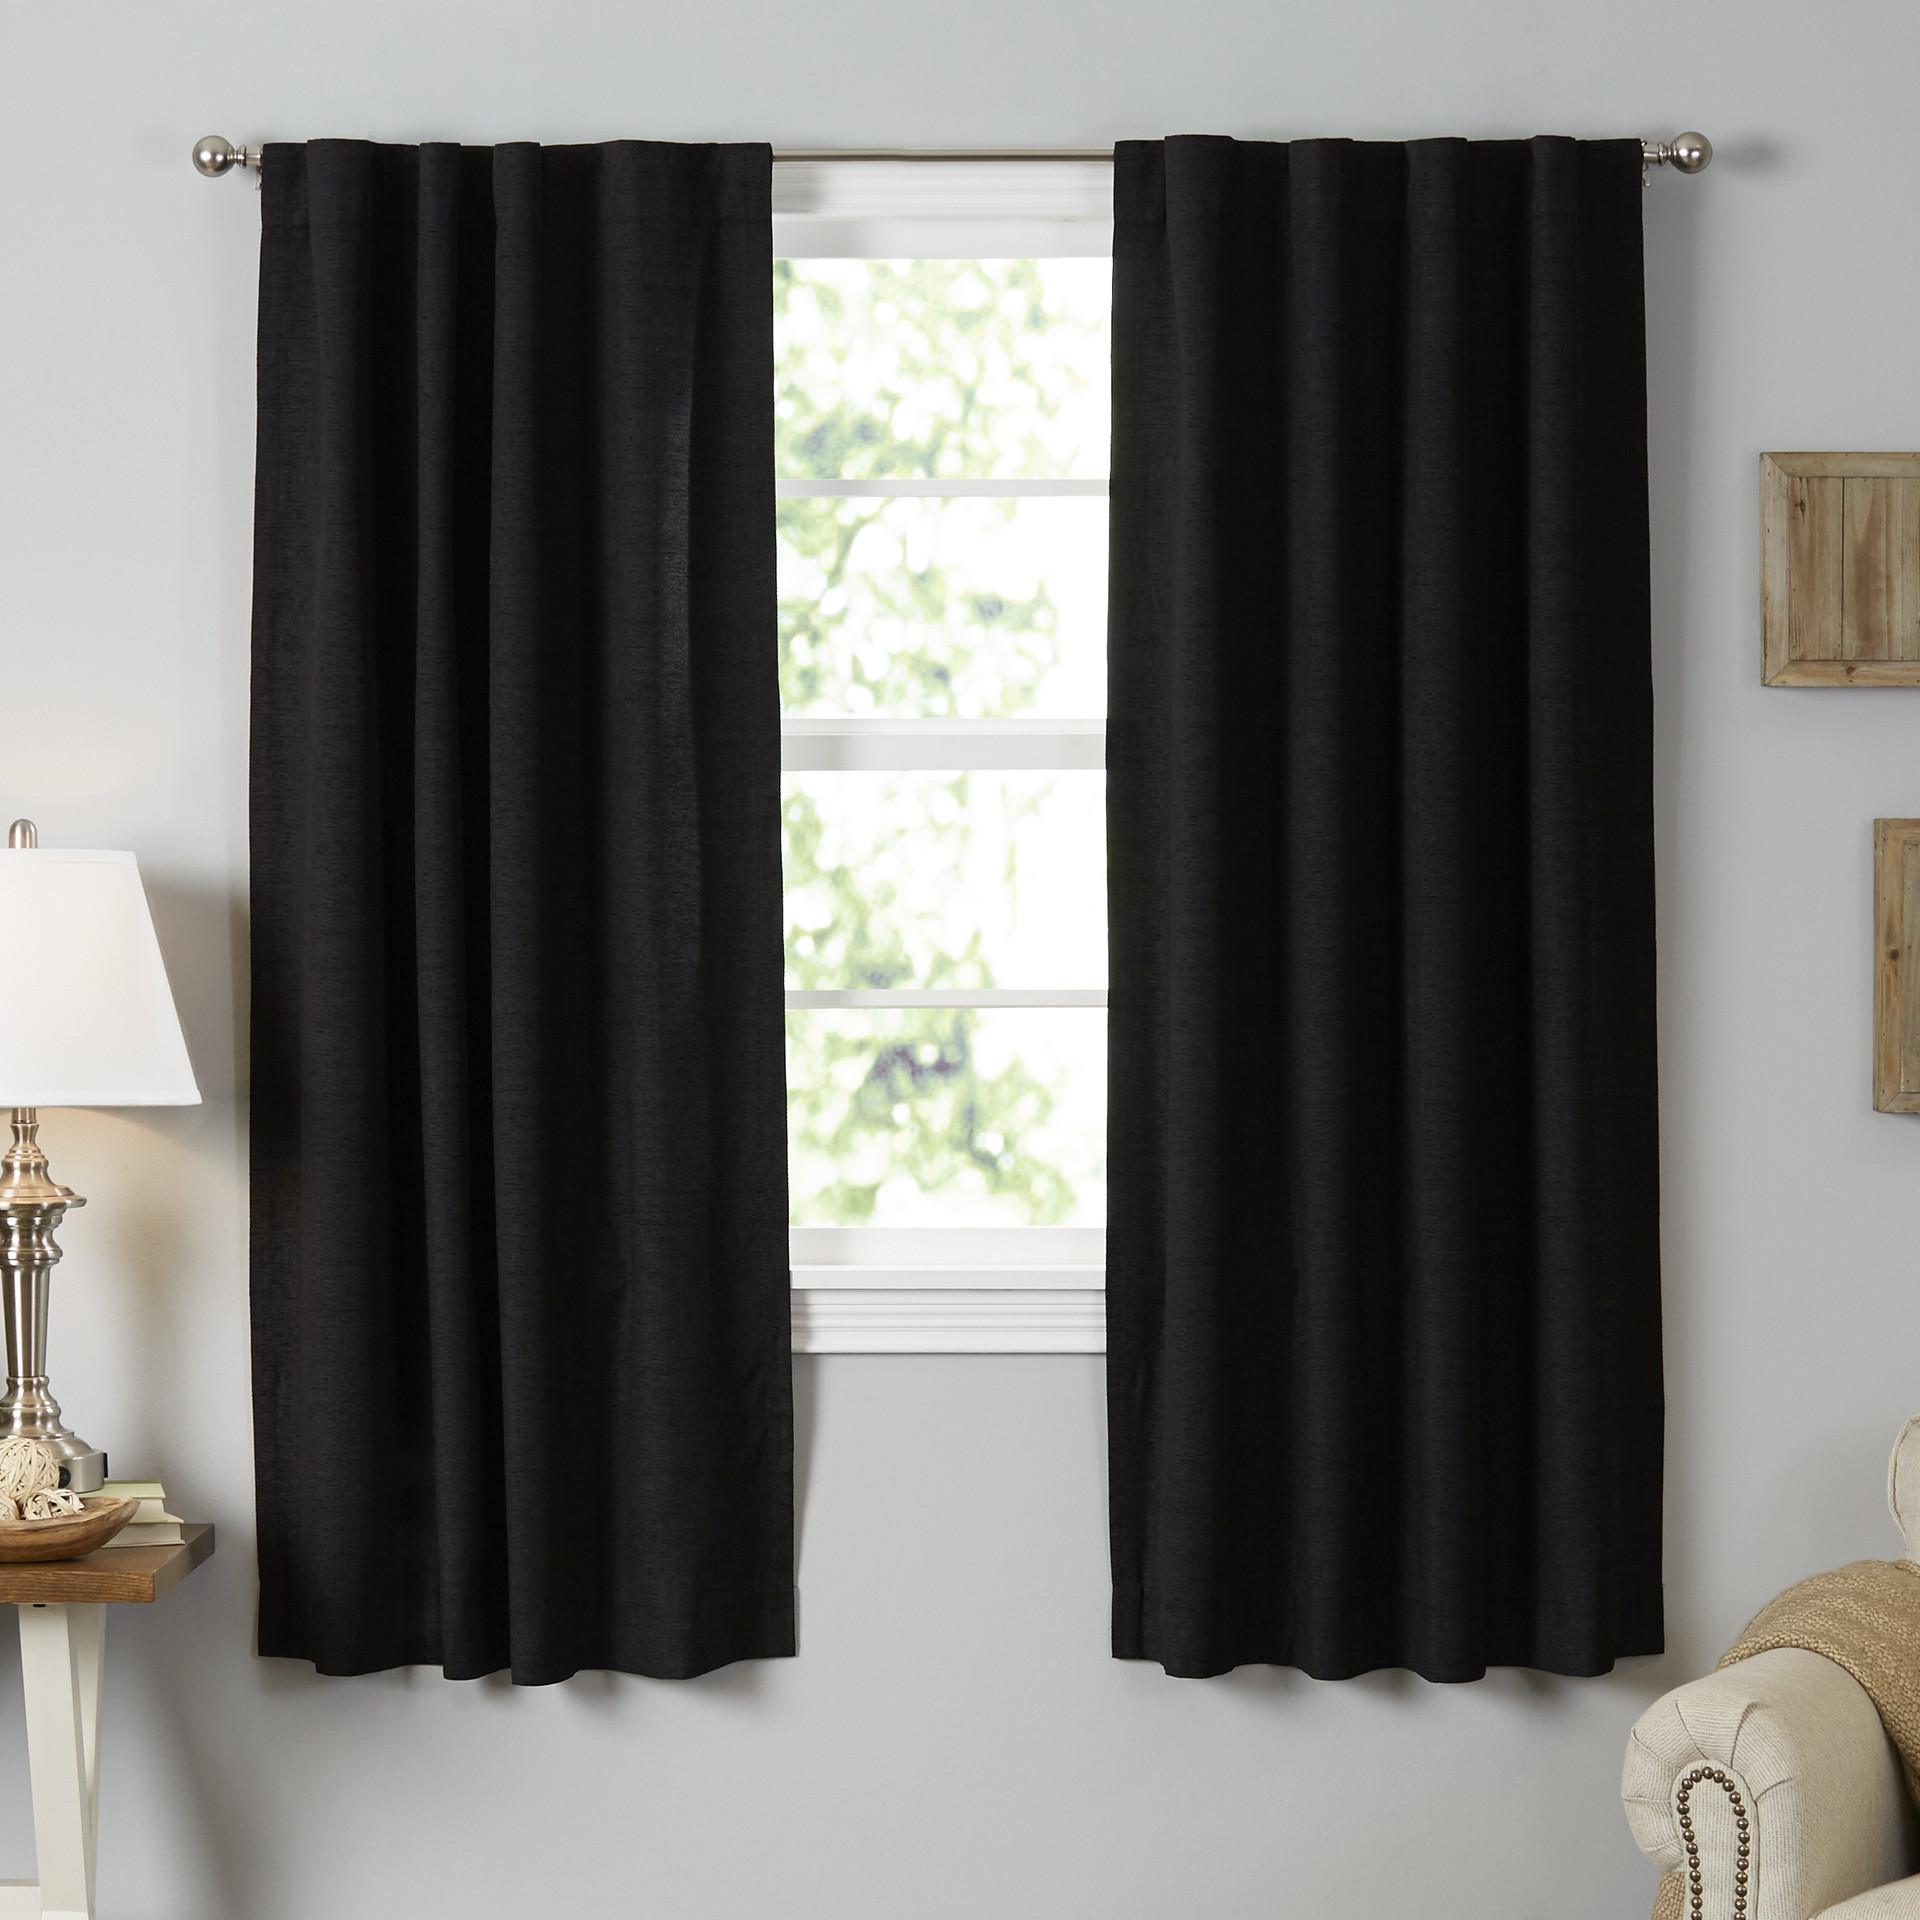 Black Curtains Target | Soundproof Curtains Target | Sound Proof Curtain